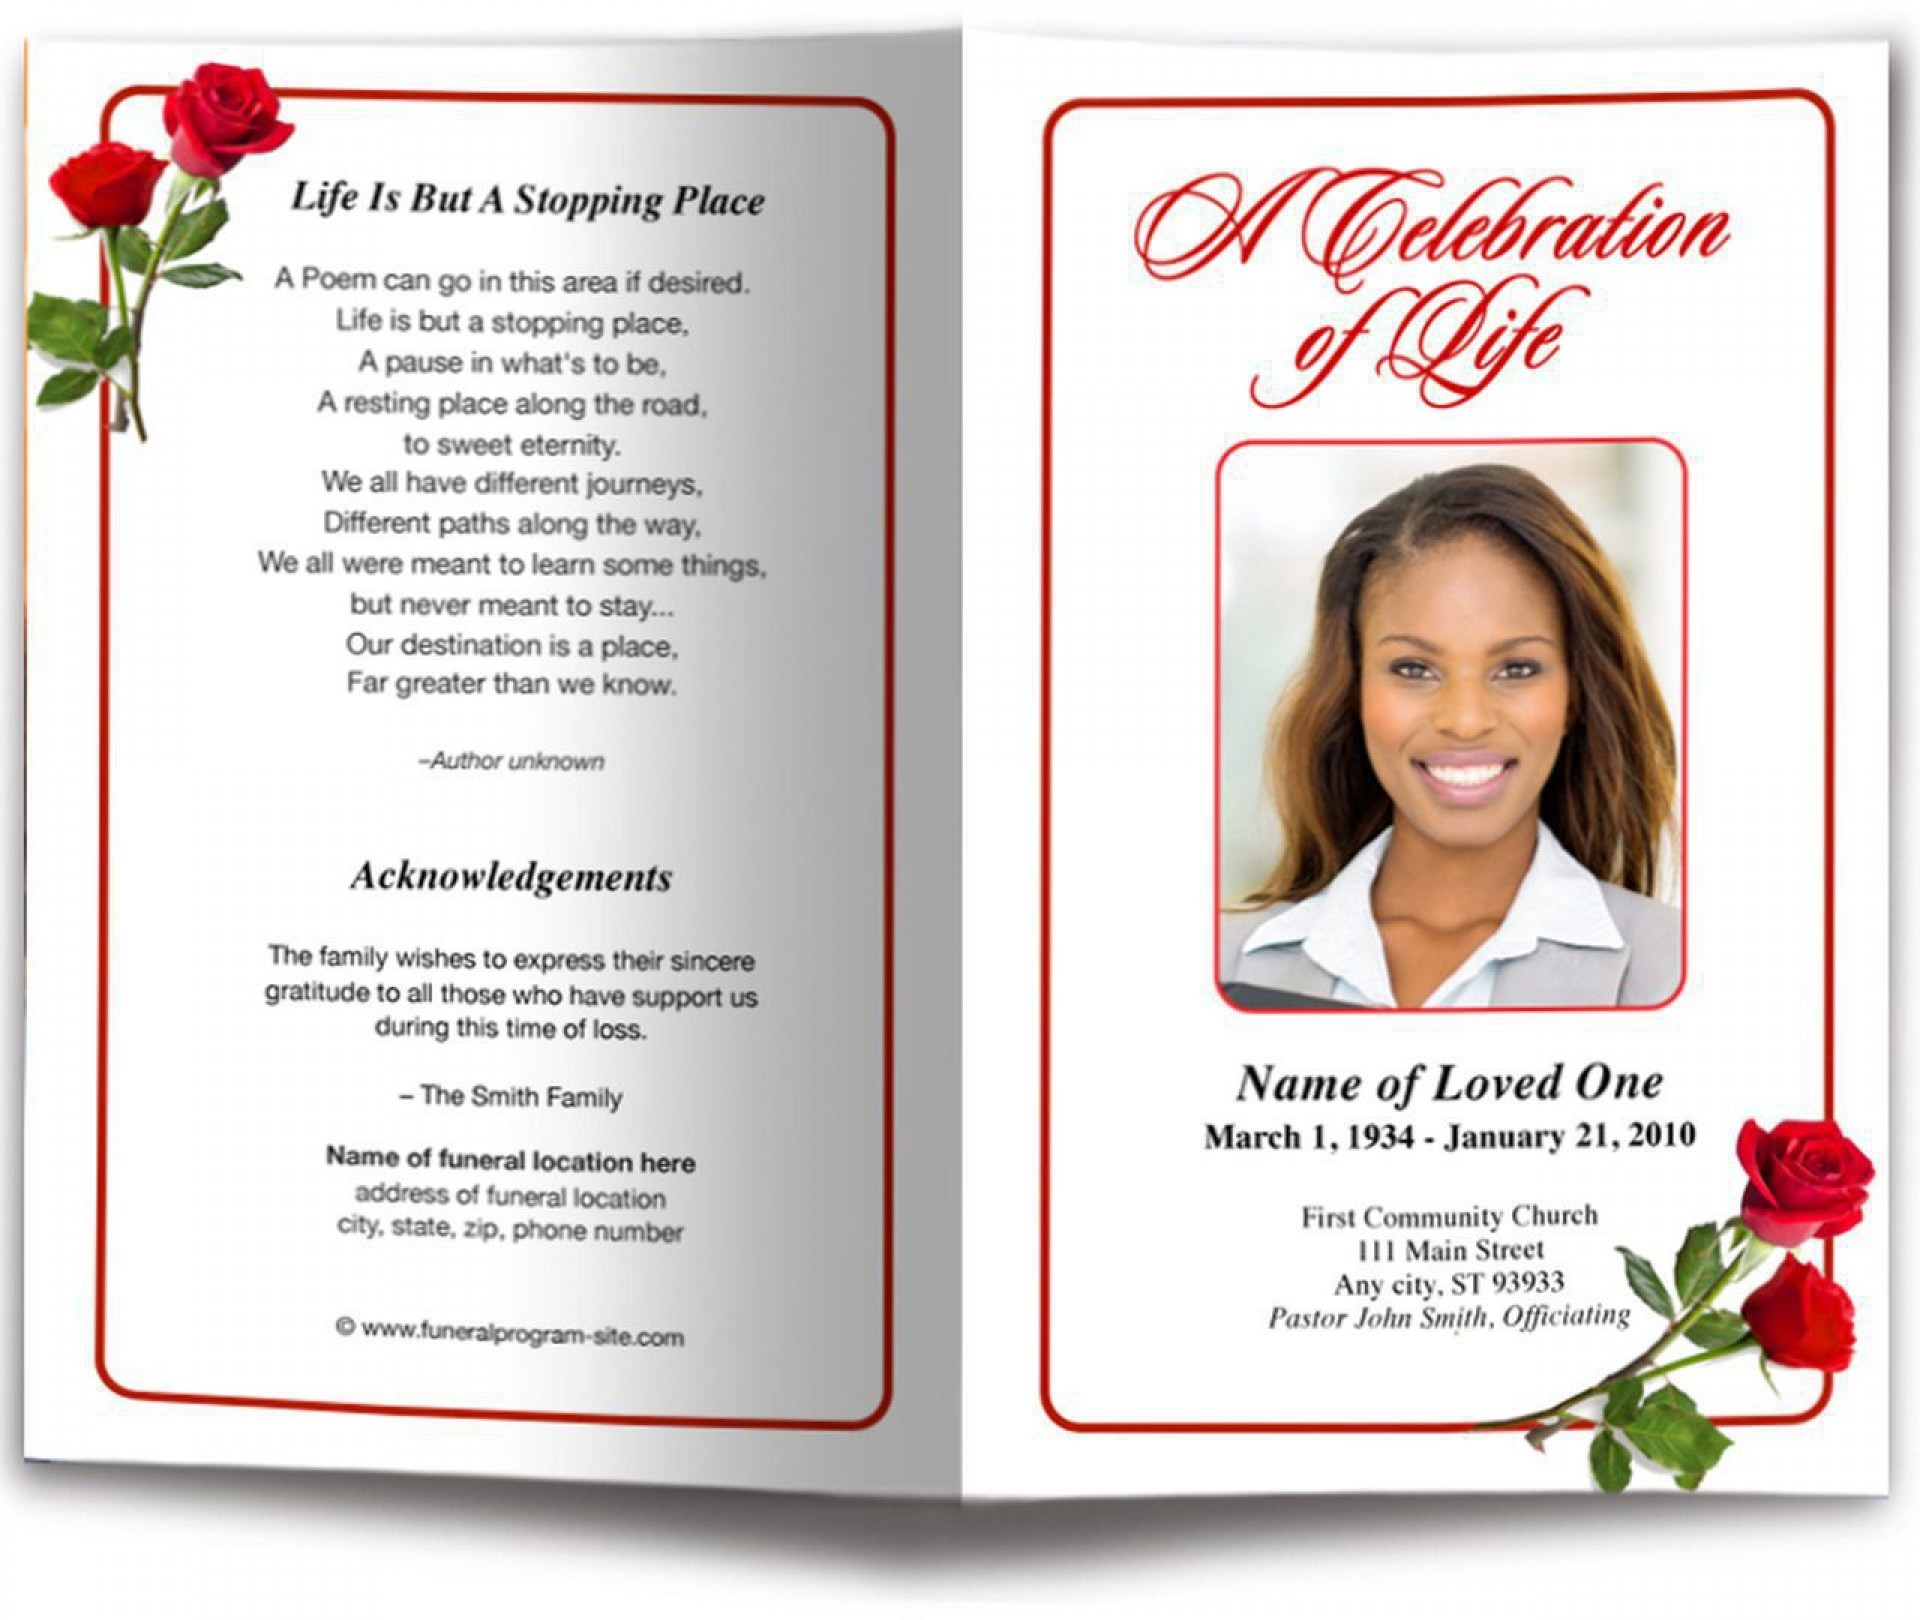 003 Unusual Template For Funeral Program Free Photo  Printable Download On Word Editable Pdf1920